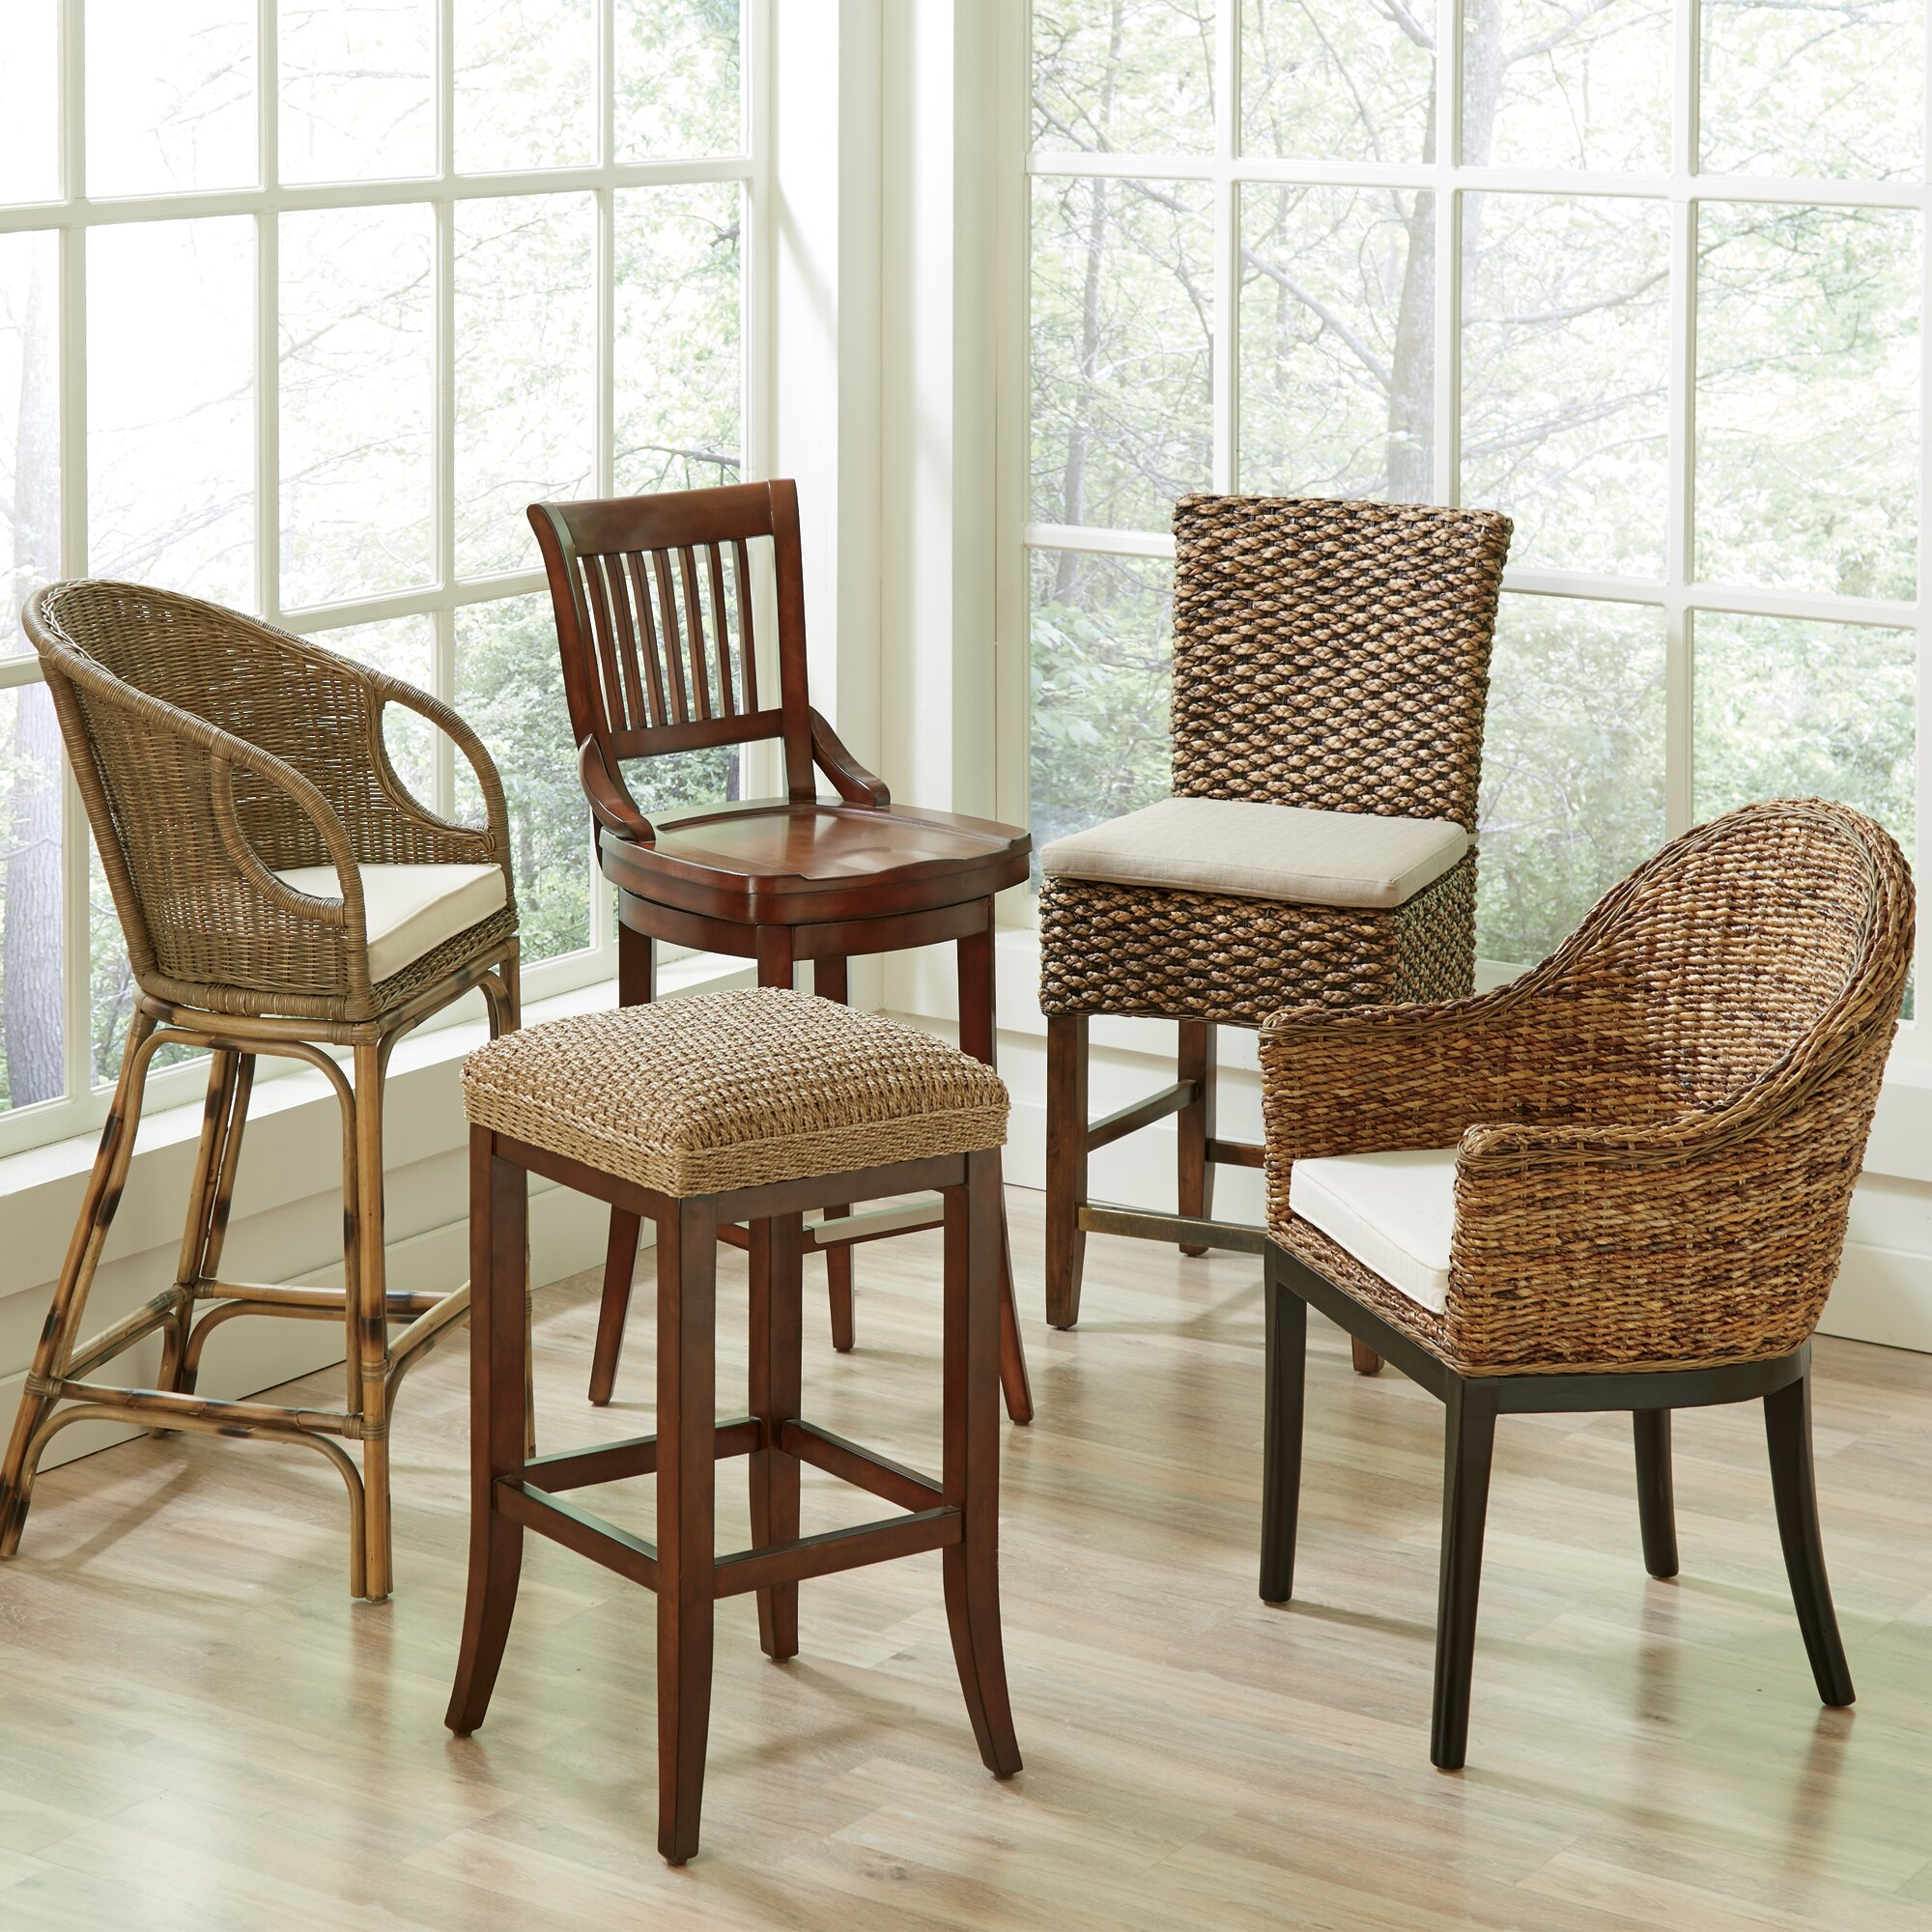 woven seagrass bar stools